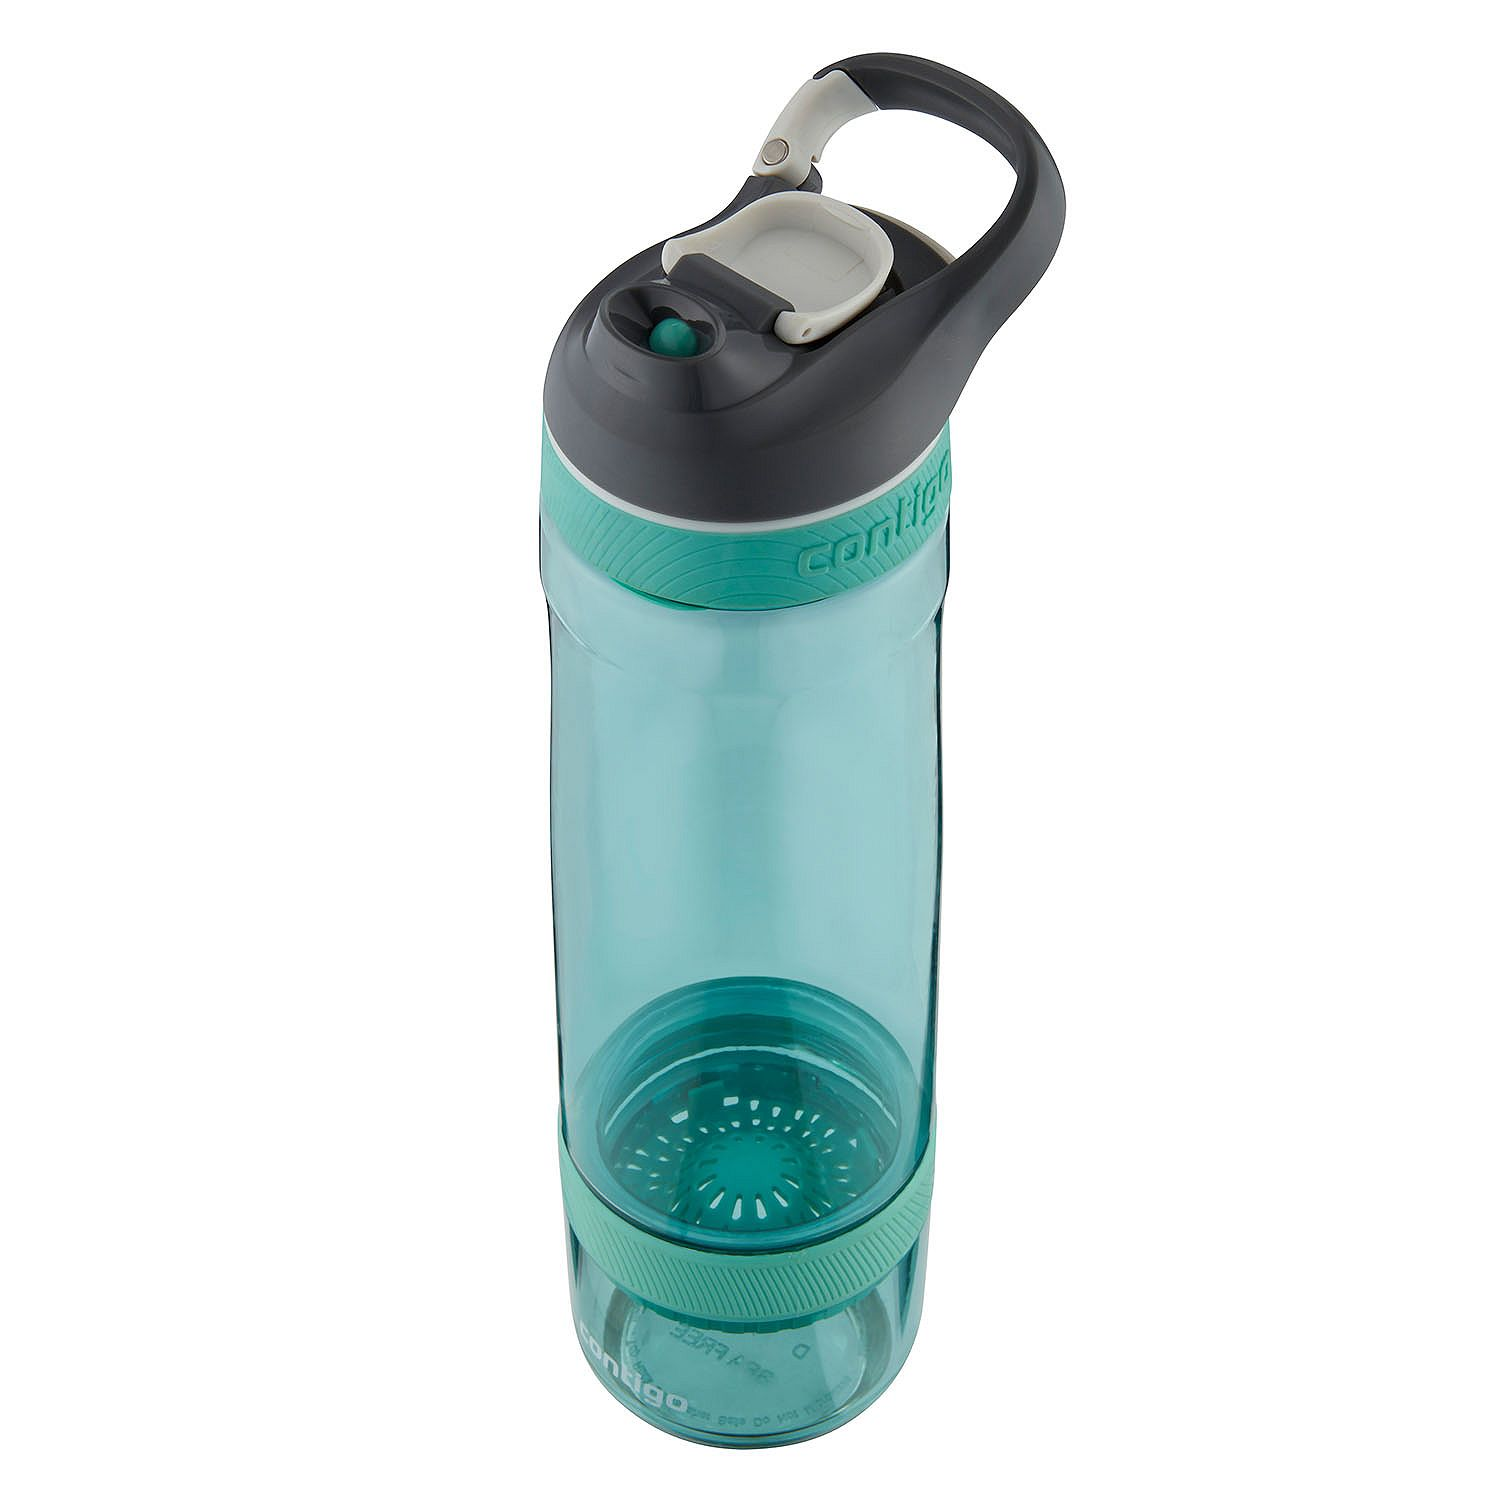 0054670b04 Contigo Autoseal Cortland + Infuser Bottle Set, 26 Oz, Grayed  Jade/Grapevine - Walmart.com